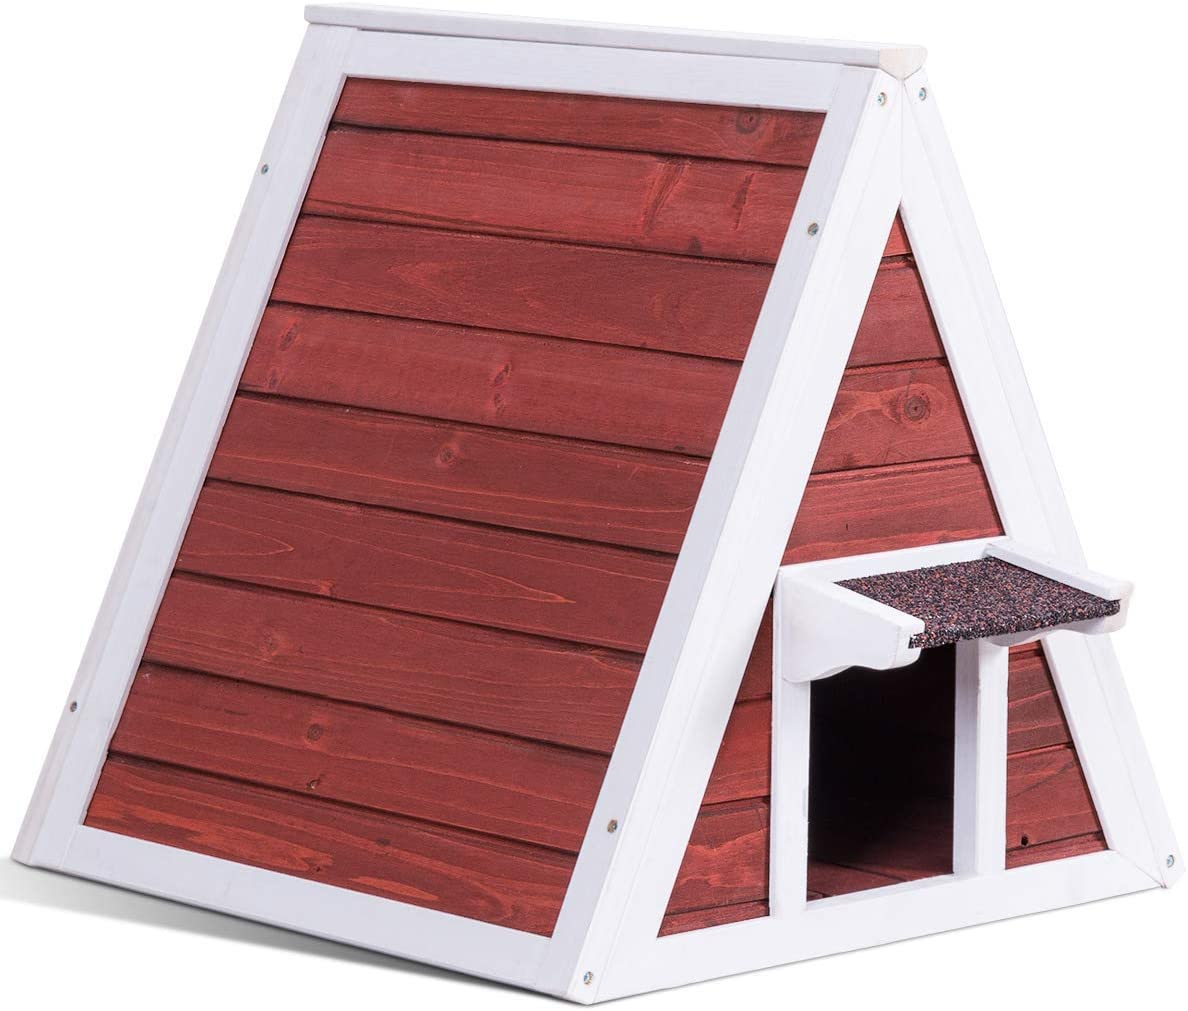 Tangkula Triangle Cat House, Wooden Indoor Outdoor Weatherproof Pet Kitten Condo Shelter with Back Escape Door, Cat House with Eave to Prevent Rain for Animals Red